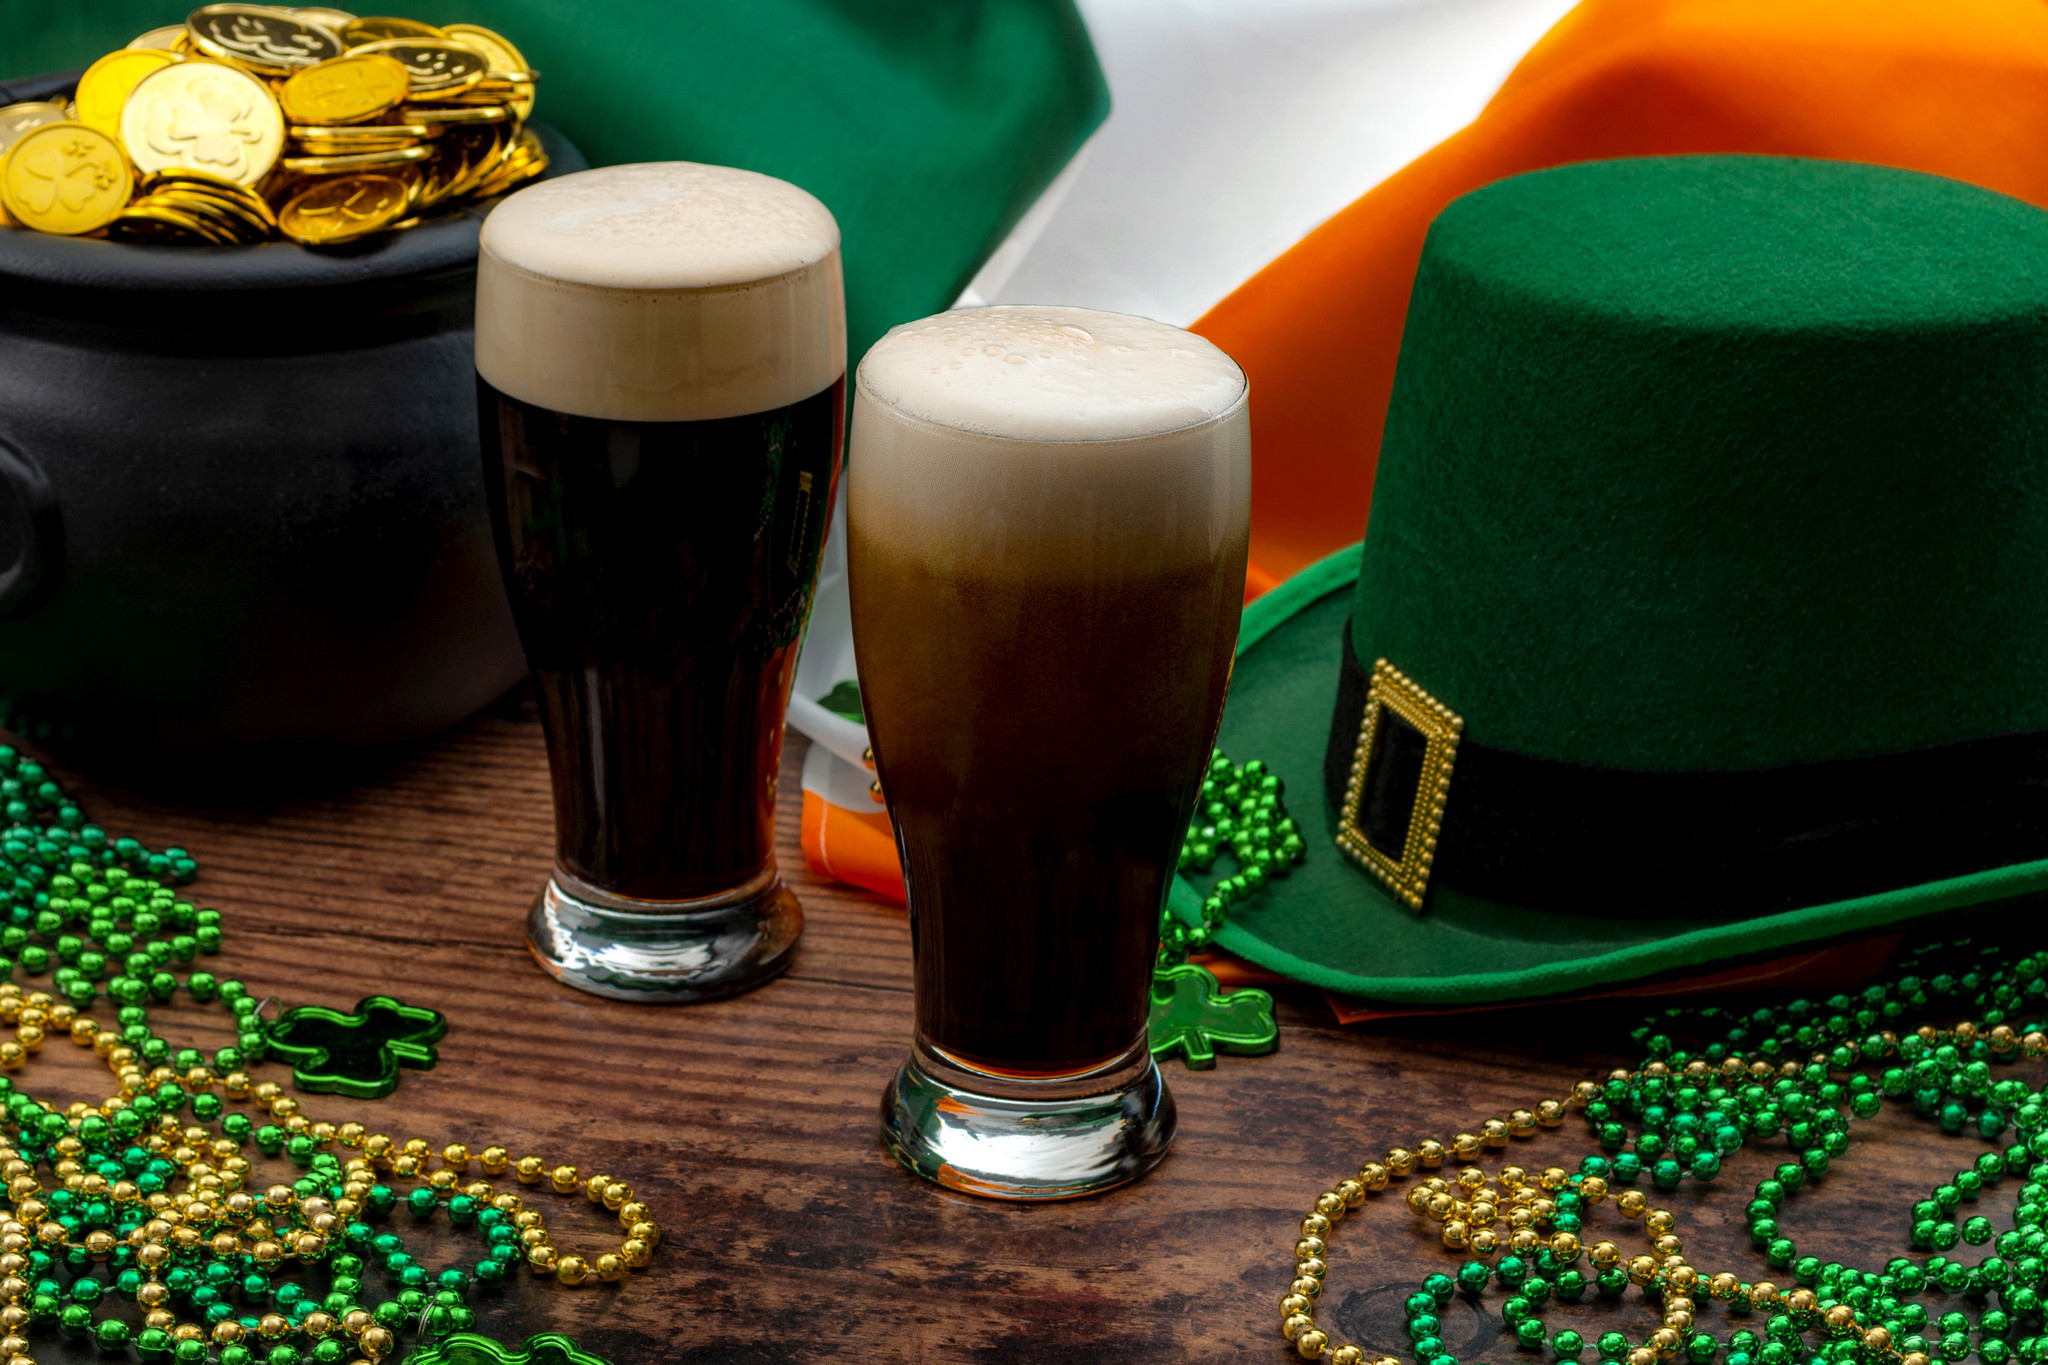 Woman killed, another injured in St. Patrick's Day shooting at Texas pub